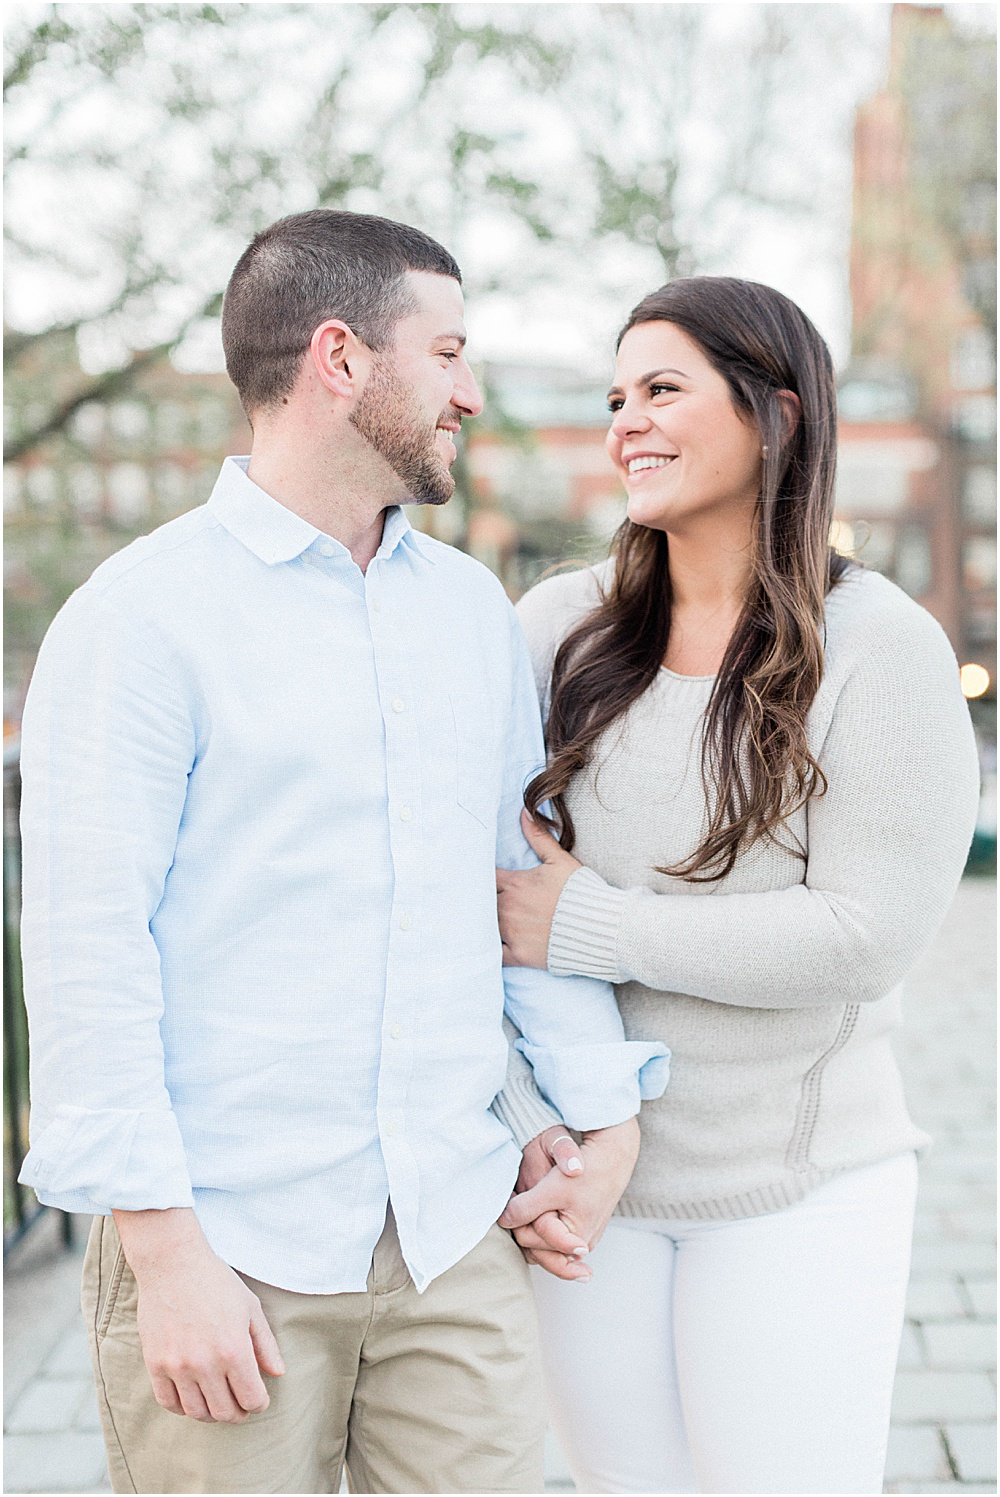 boston_charles_river_esplanaude_back_bay_cherry_blossoms_spring_engagement_session_boston_charles_river_wedding_photographer_meredith_jane_photography_photo_0198.jpg